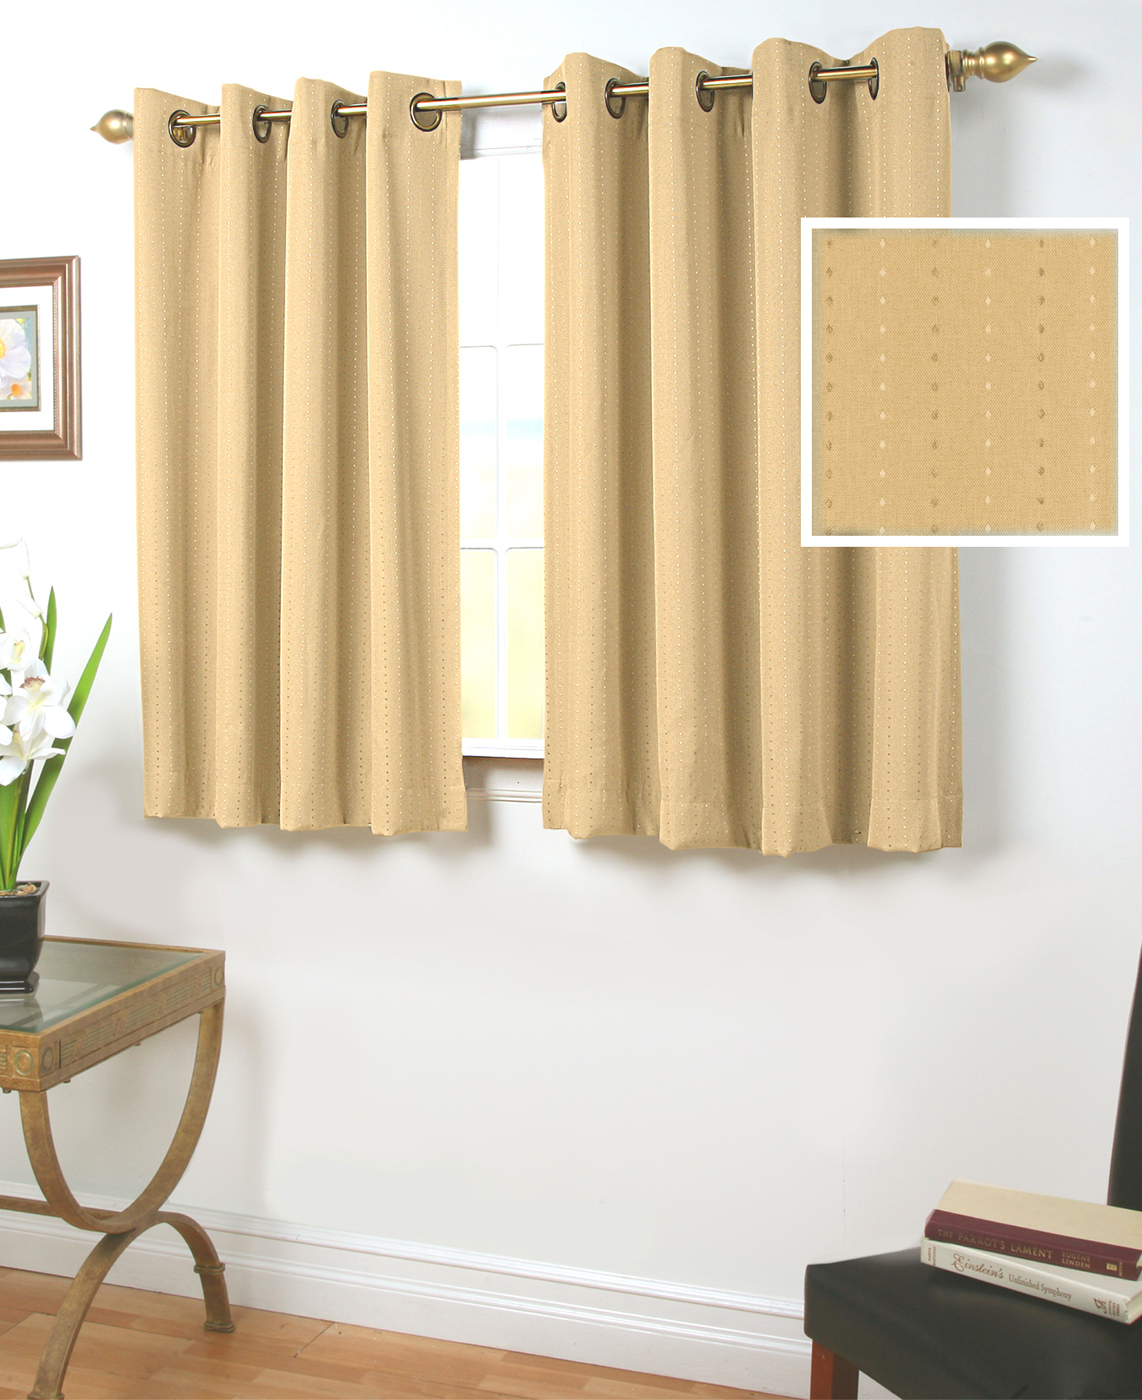 24 Inch Kitchen Curtains 45 Inch Long Curtains Thecurtainshop